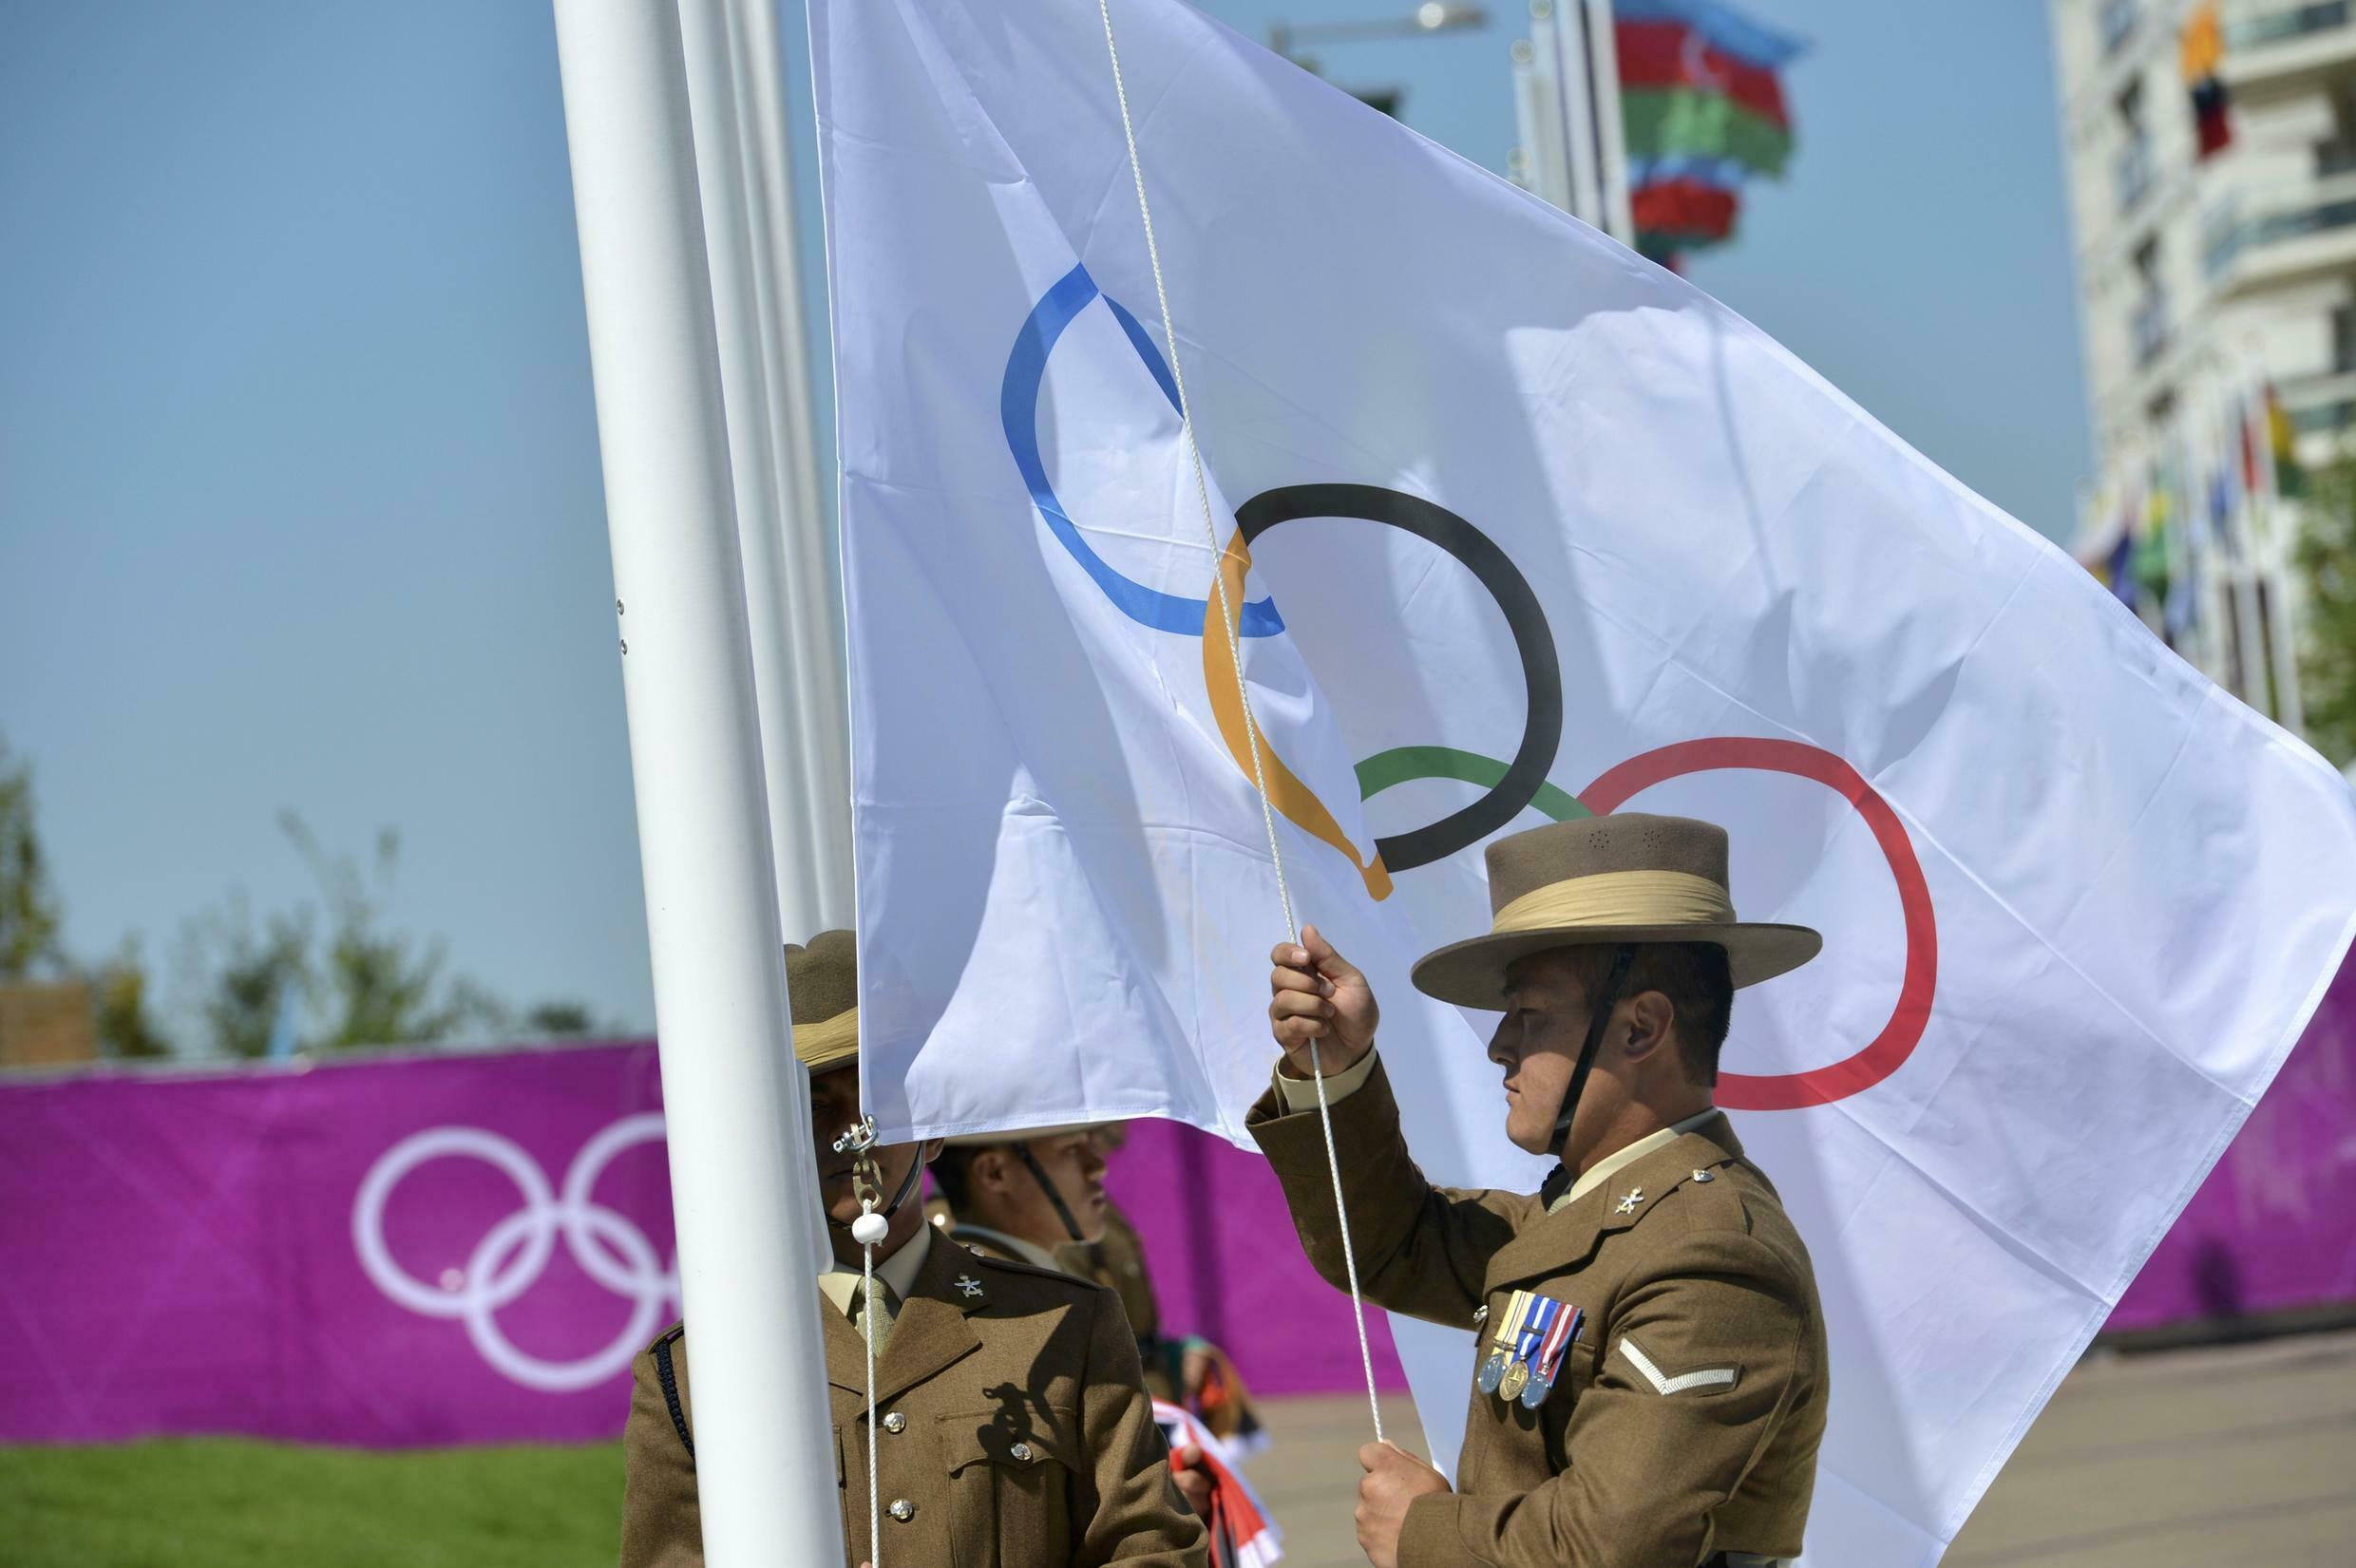 Doublet SA, a French company, has supplied the official flags for the 2012 Olympic Games